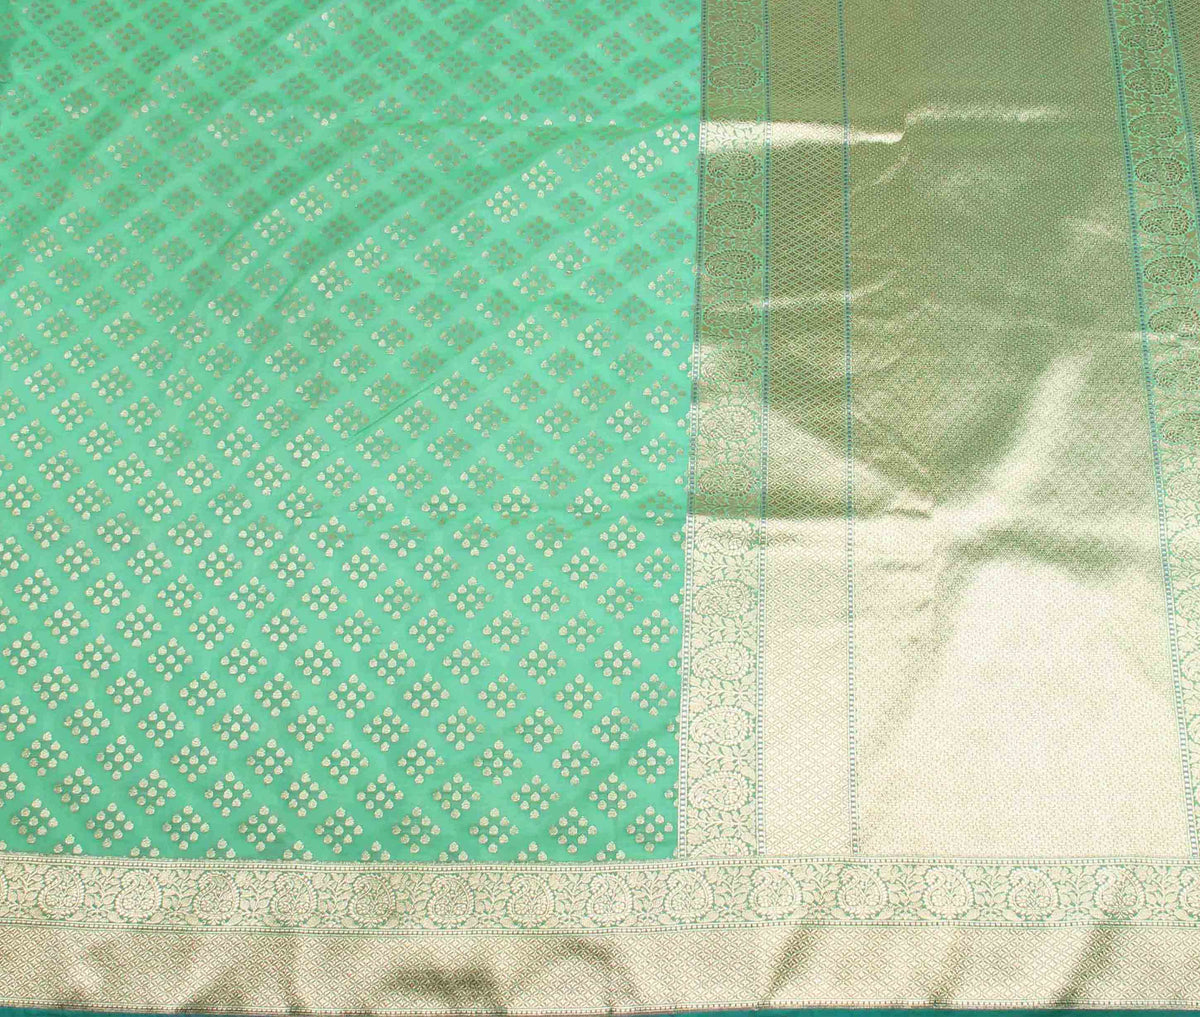 Green Banarasi Saree with drop motifs (2) flat